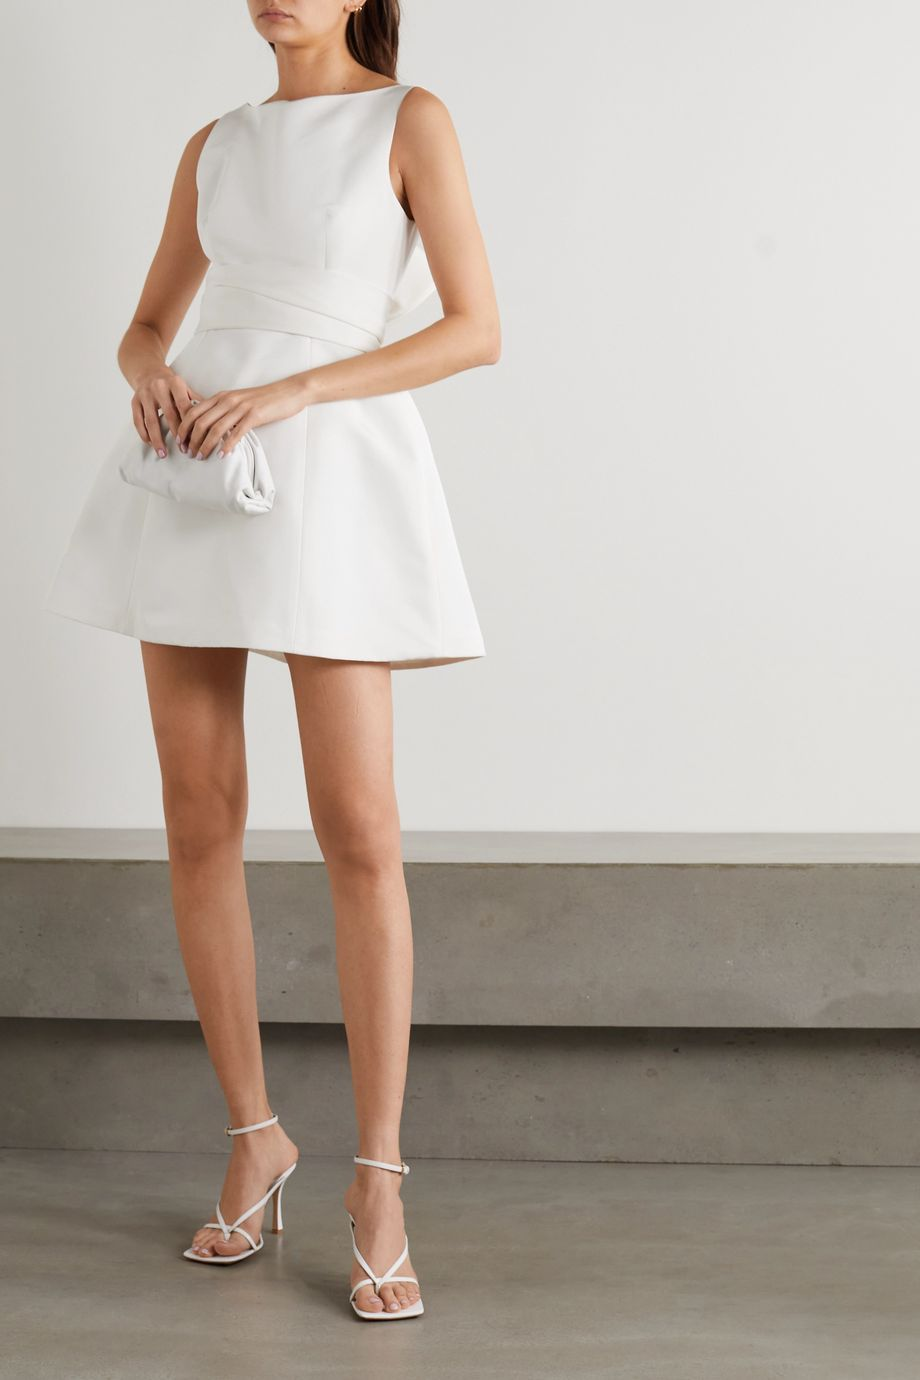 BRANDON MAXWELL Silk-faille mini dress